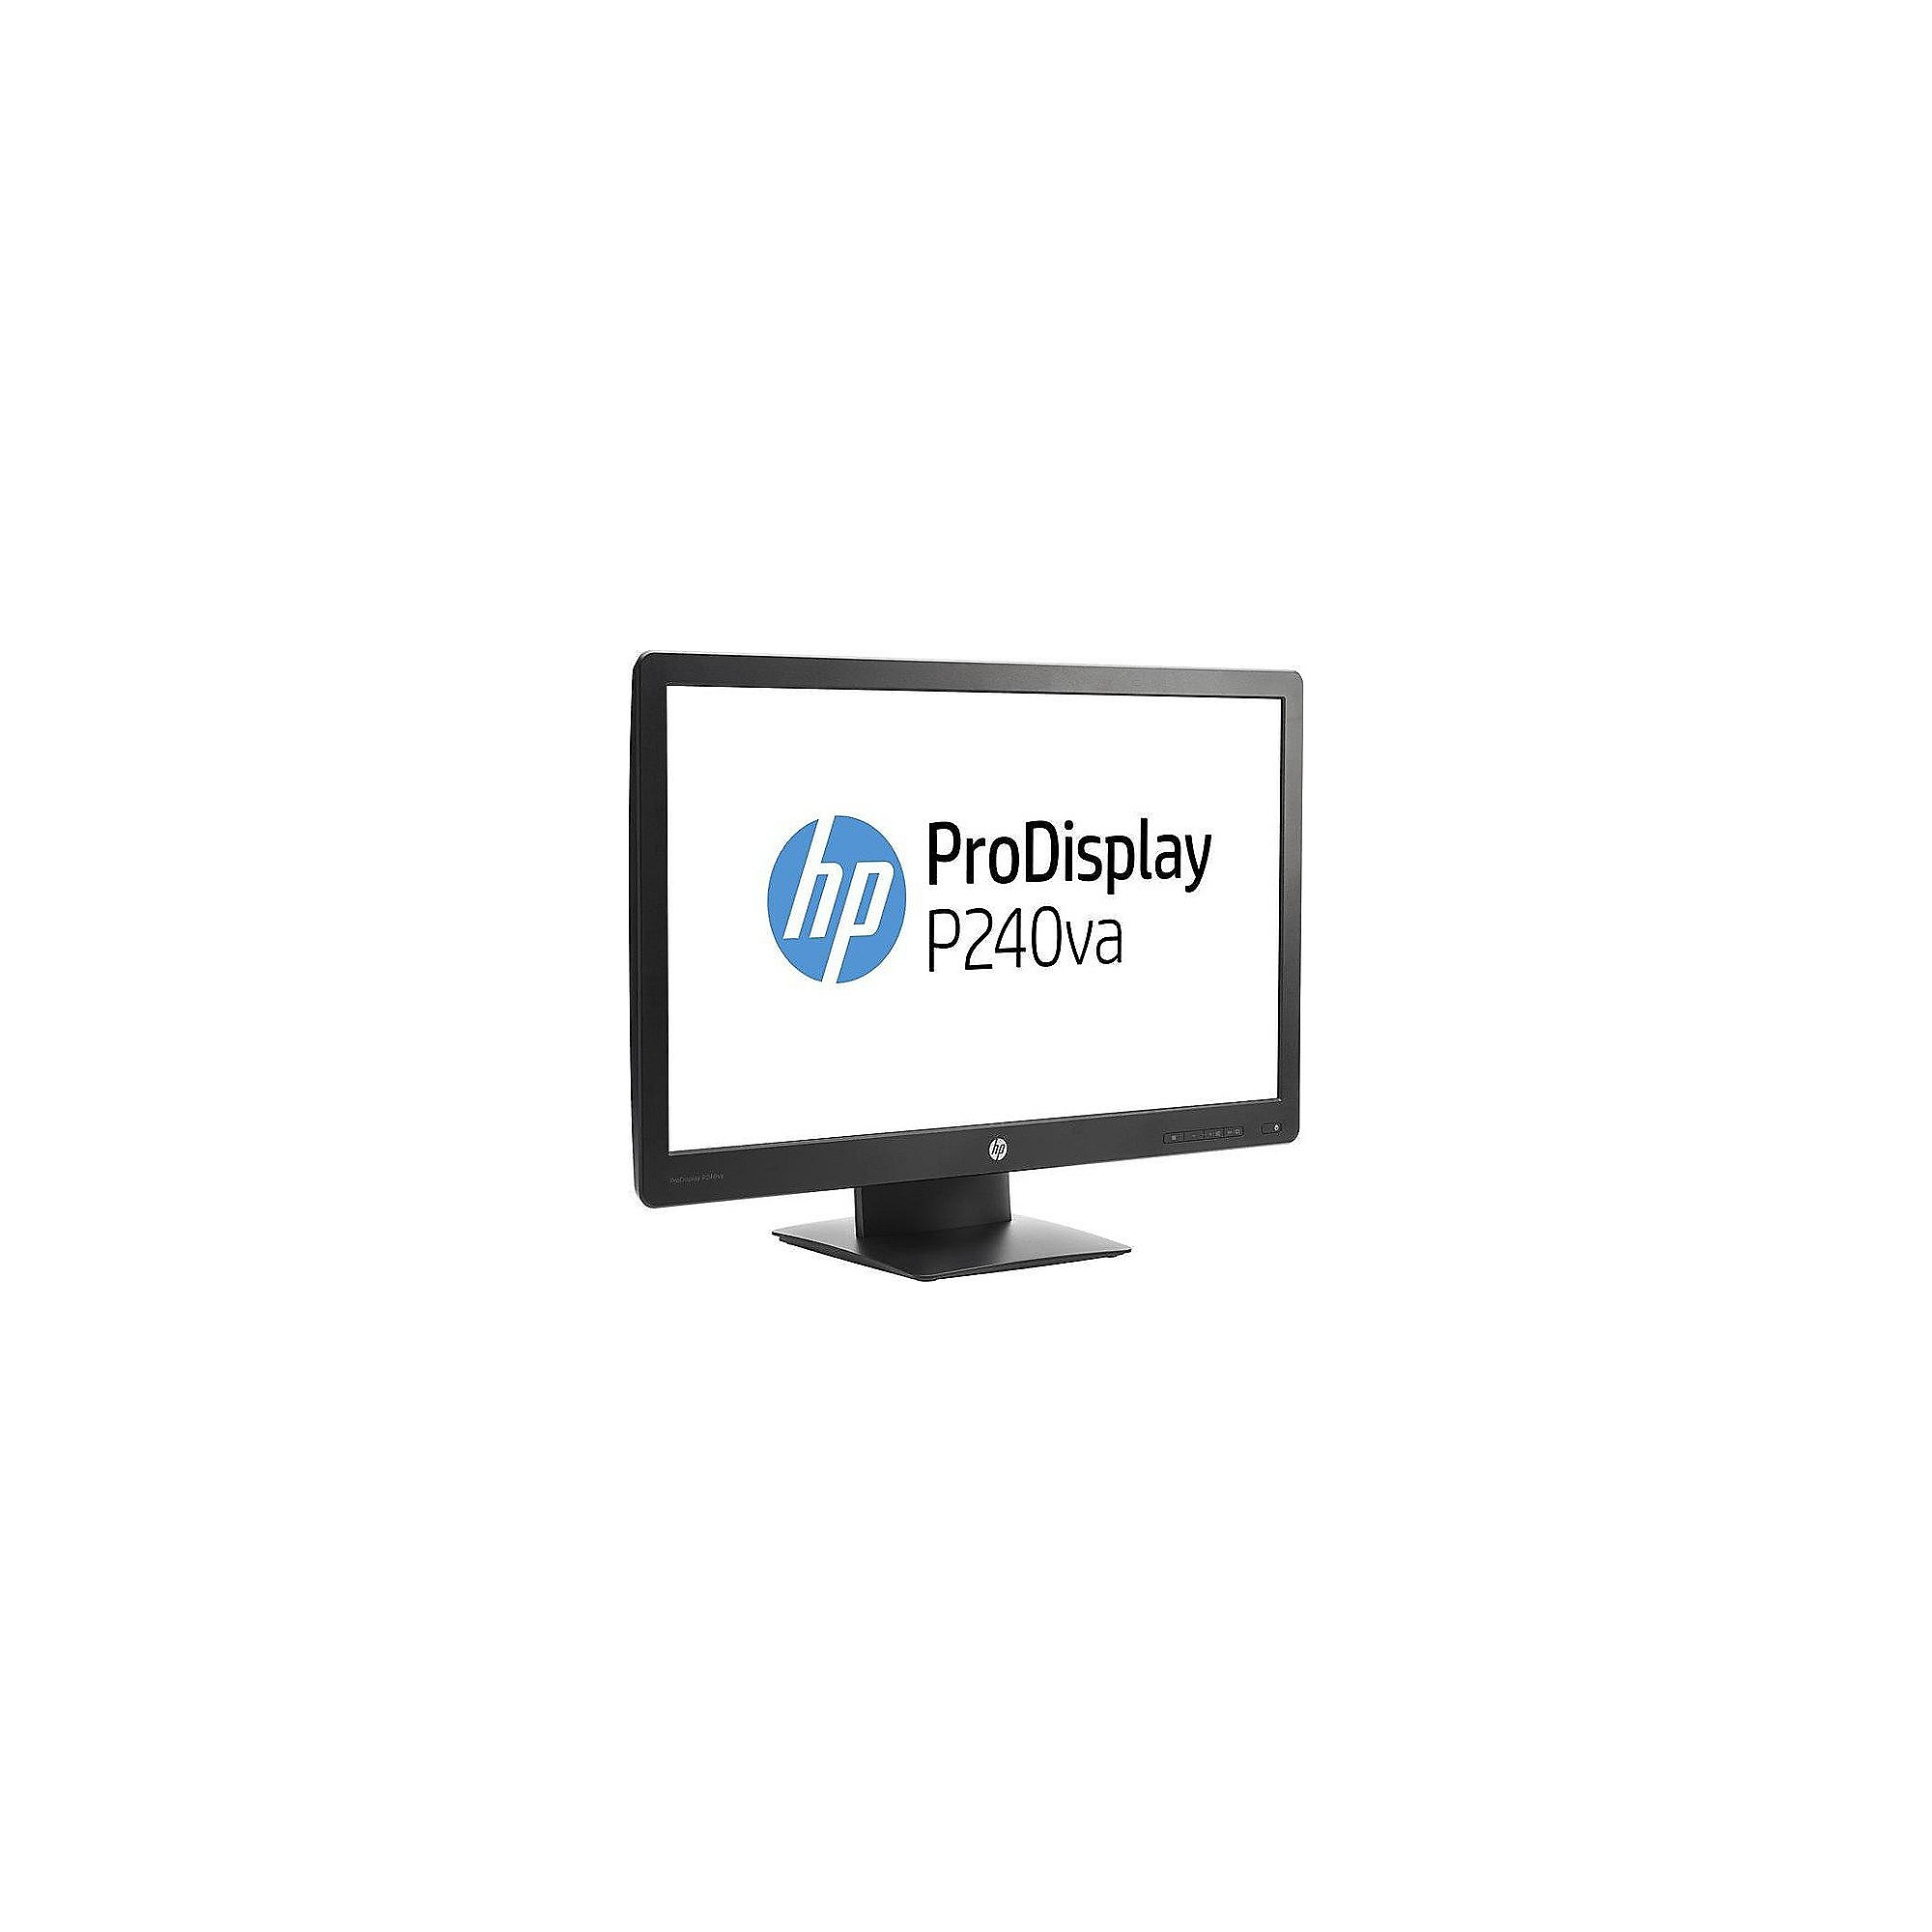 "HP ProDisplay P240va (23,8"") 60,5cm 16:9 FHD VGA/HDMI/DP 8ms 5Mio: 1 LED"